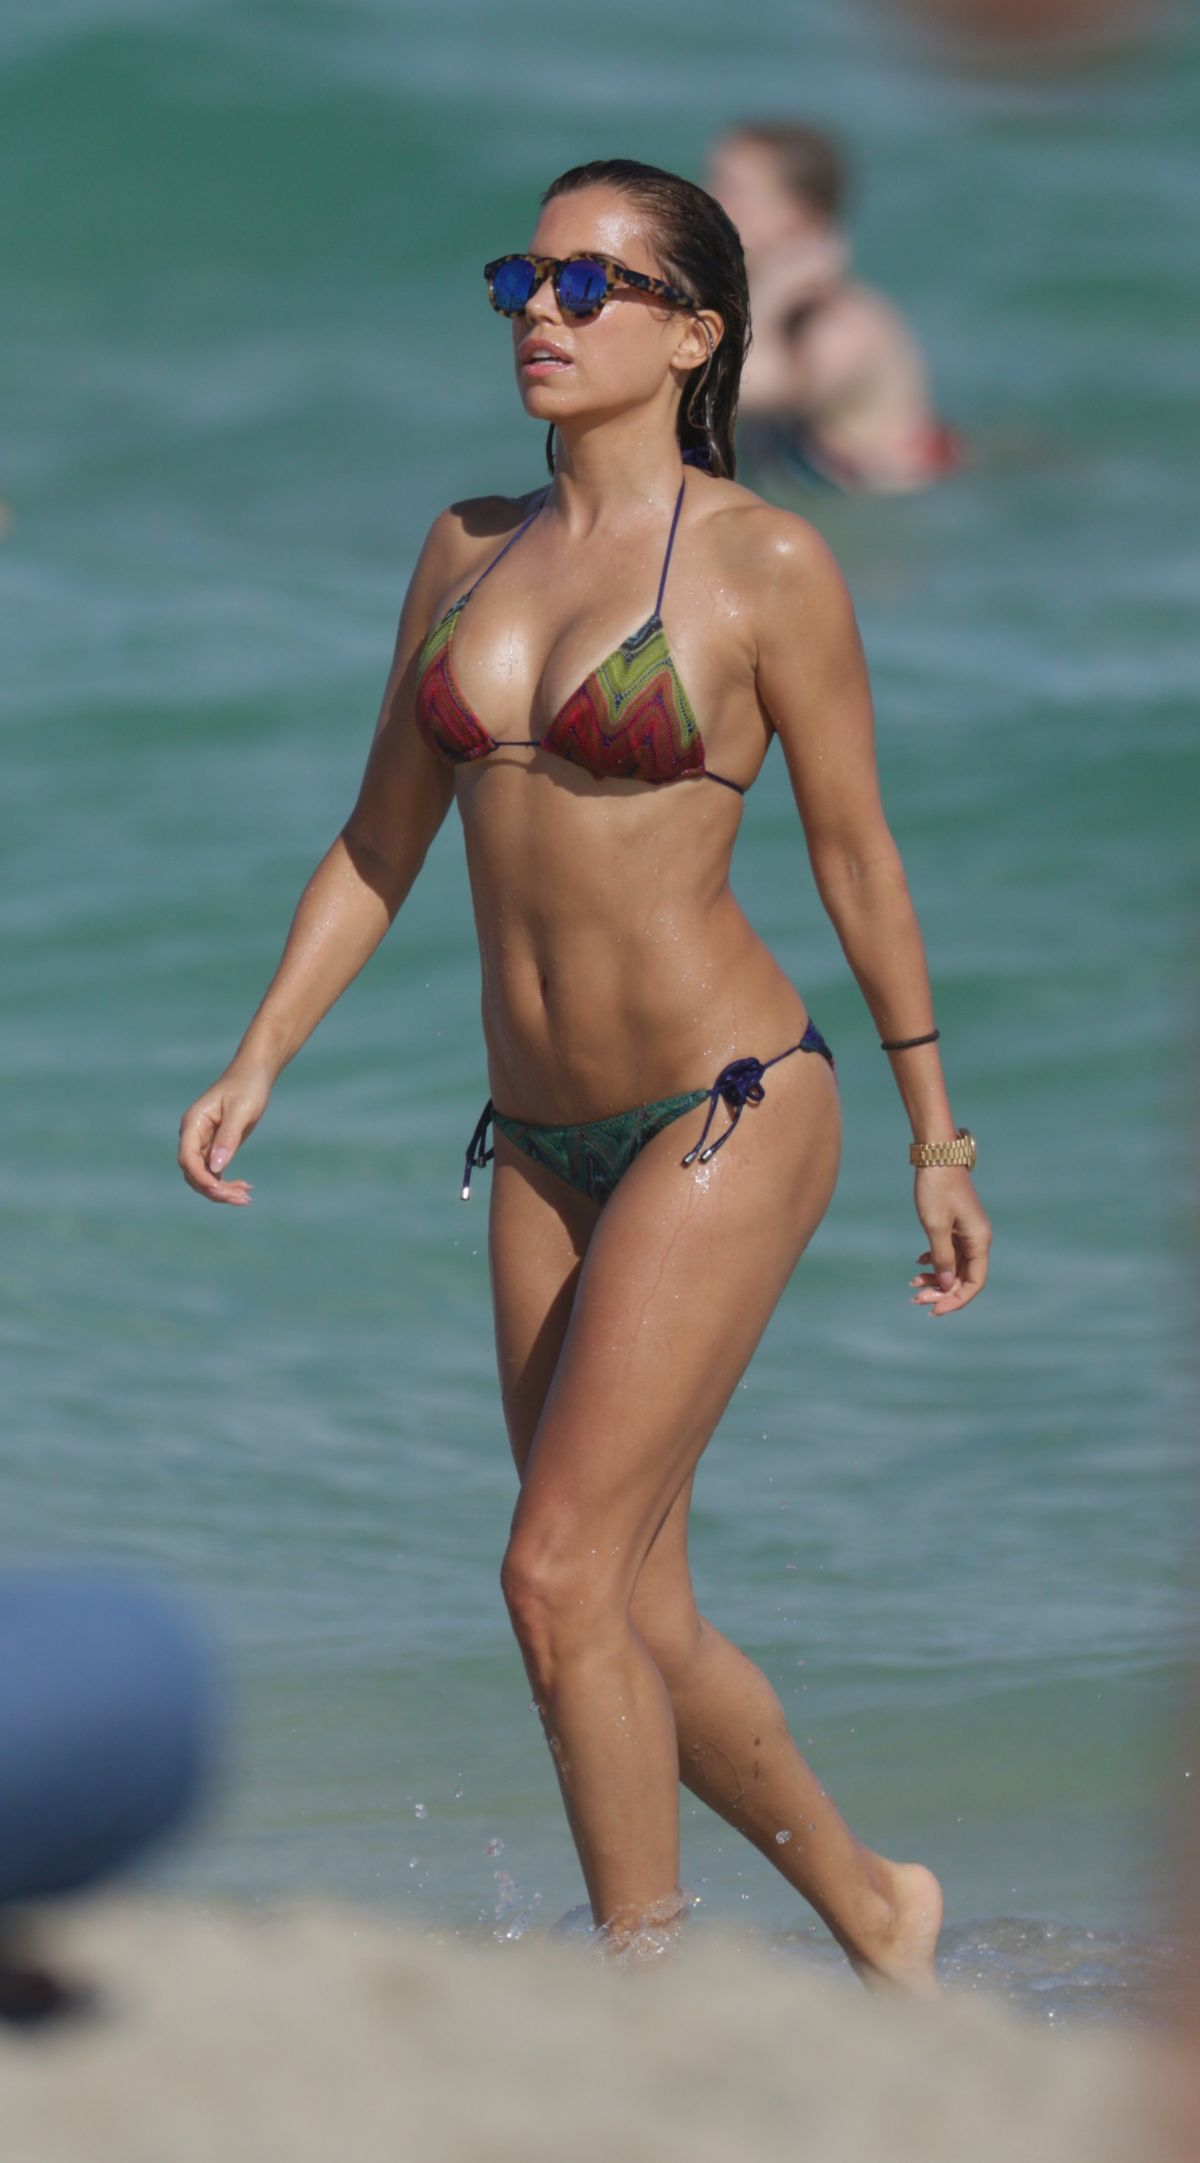 Sylvie Meis in Black Bikini on the beach in Miami Pic 7 of 35